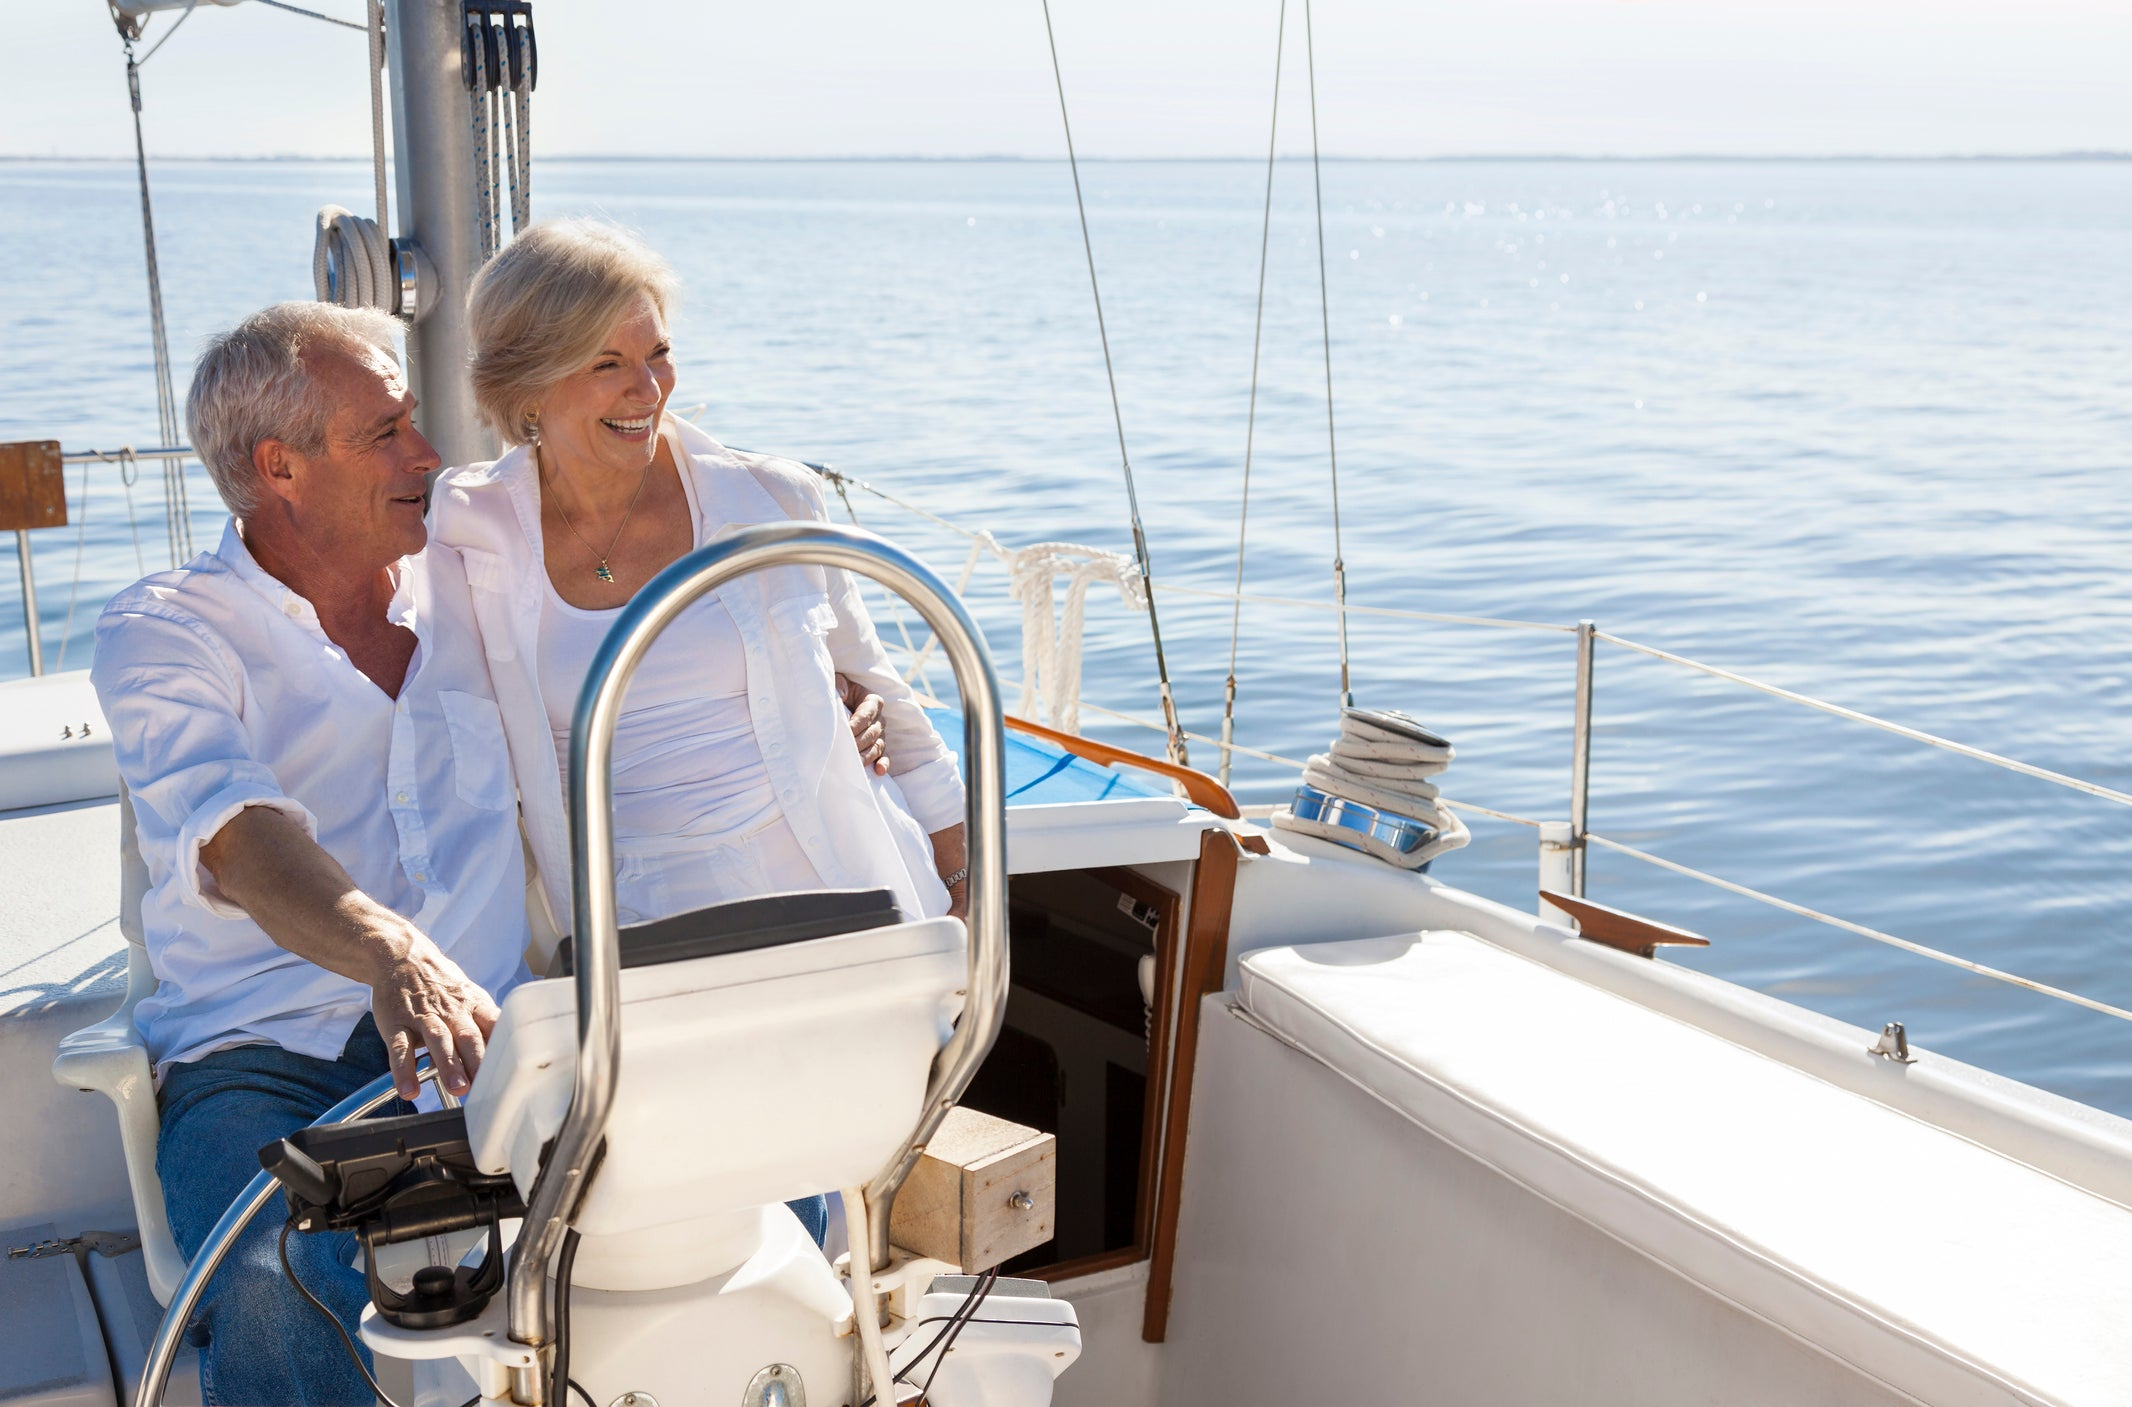 3 Things You Need to Do to Retire Early | The Motley Fool